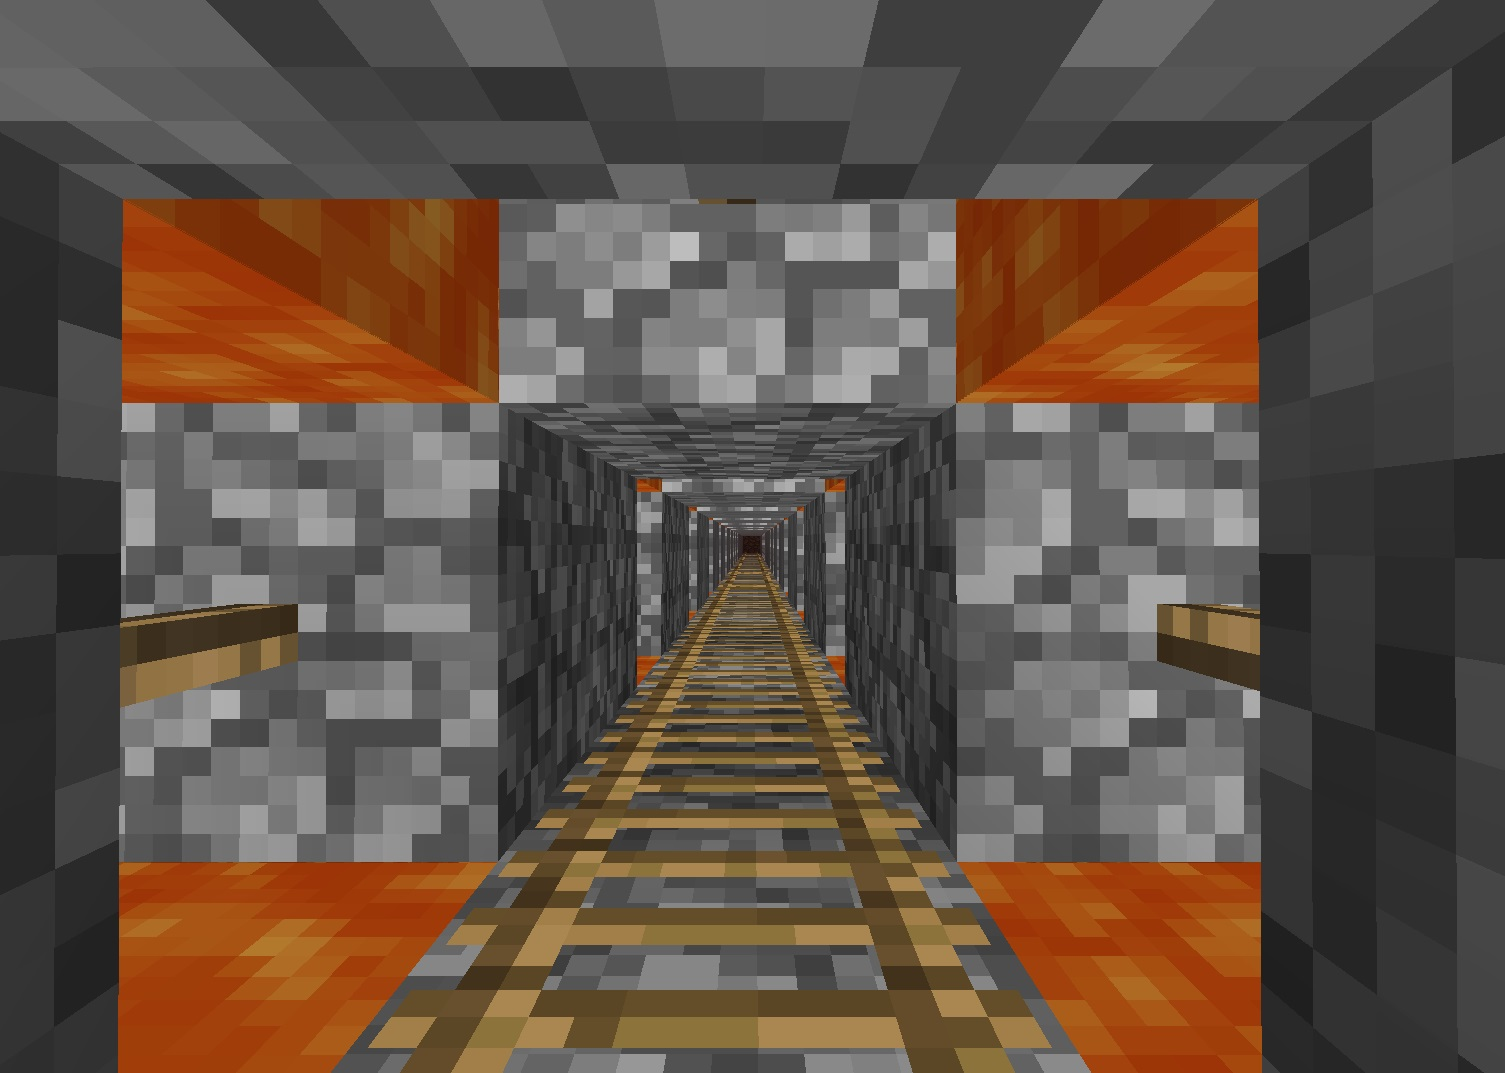 Into The Roof Of The Nether The Ancient Gaming Noob There are 18 blue ice tunnels for sale on etsy, and they cost $47.69 on average. into the roof of the nether the